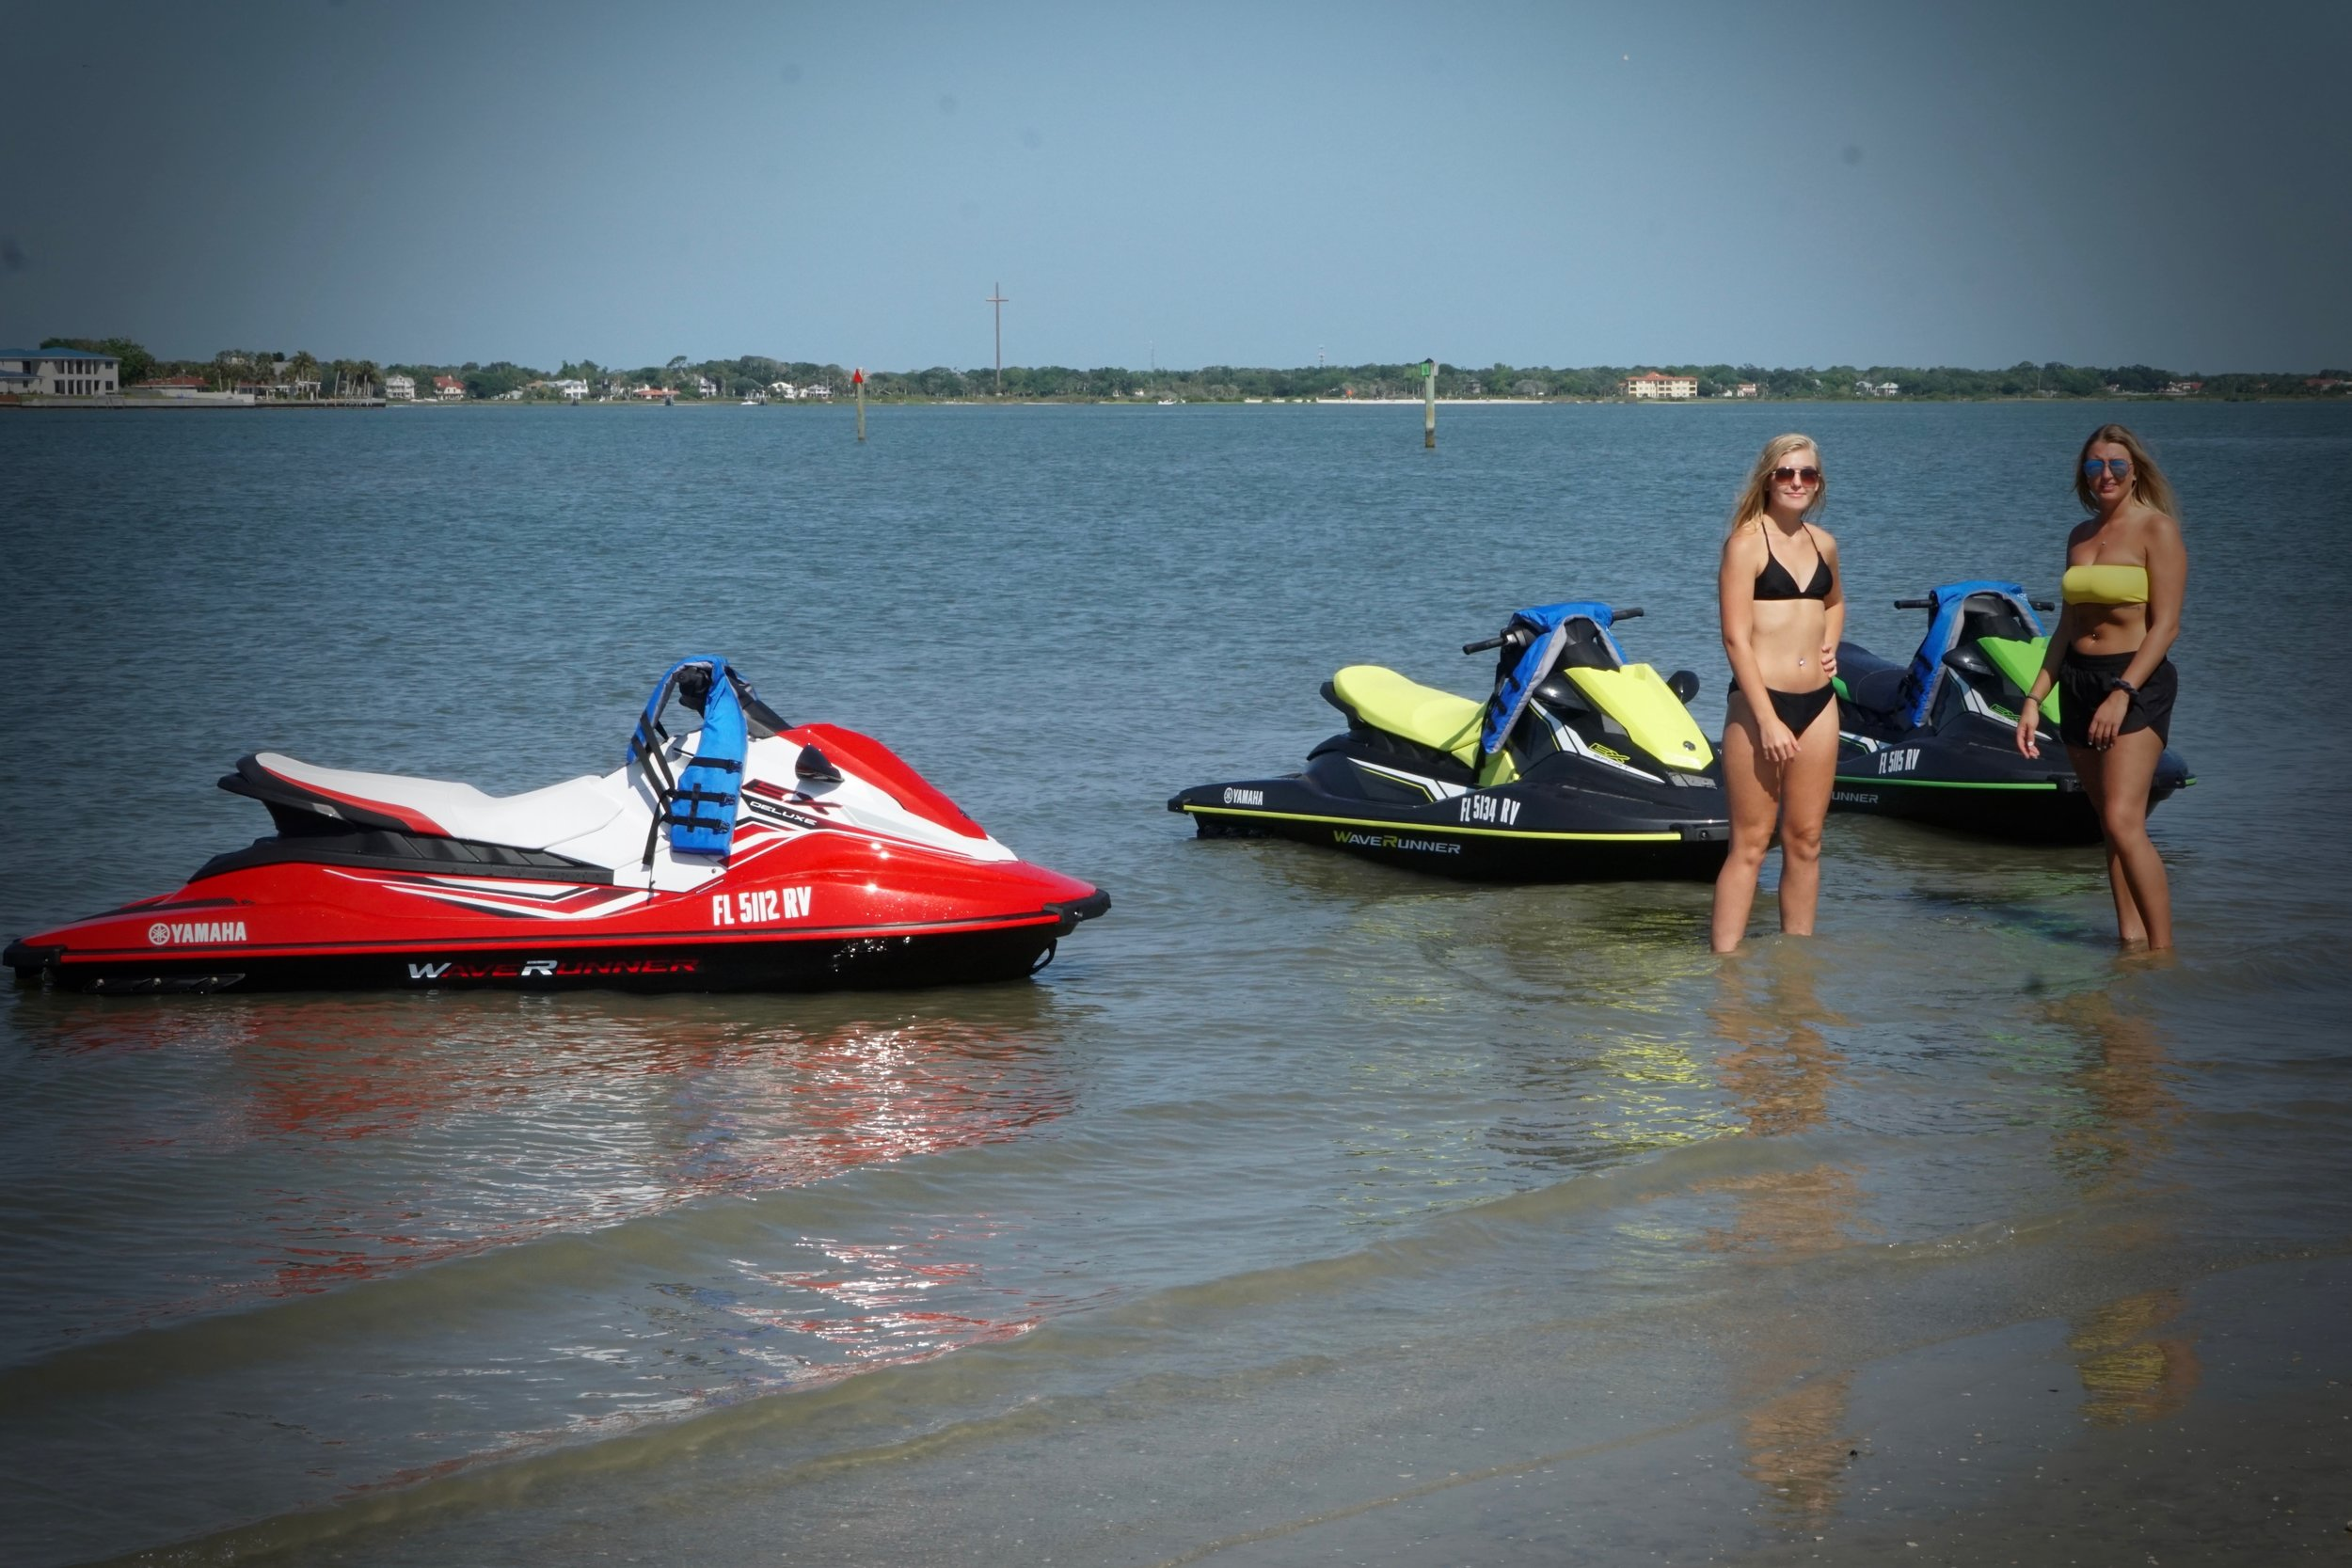 7 Days a week 9AM-5pm - Excursions starting at 1 hourUp to 2 persons per Wave Runner$120 per jet skiAsk about extended or customized excursions